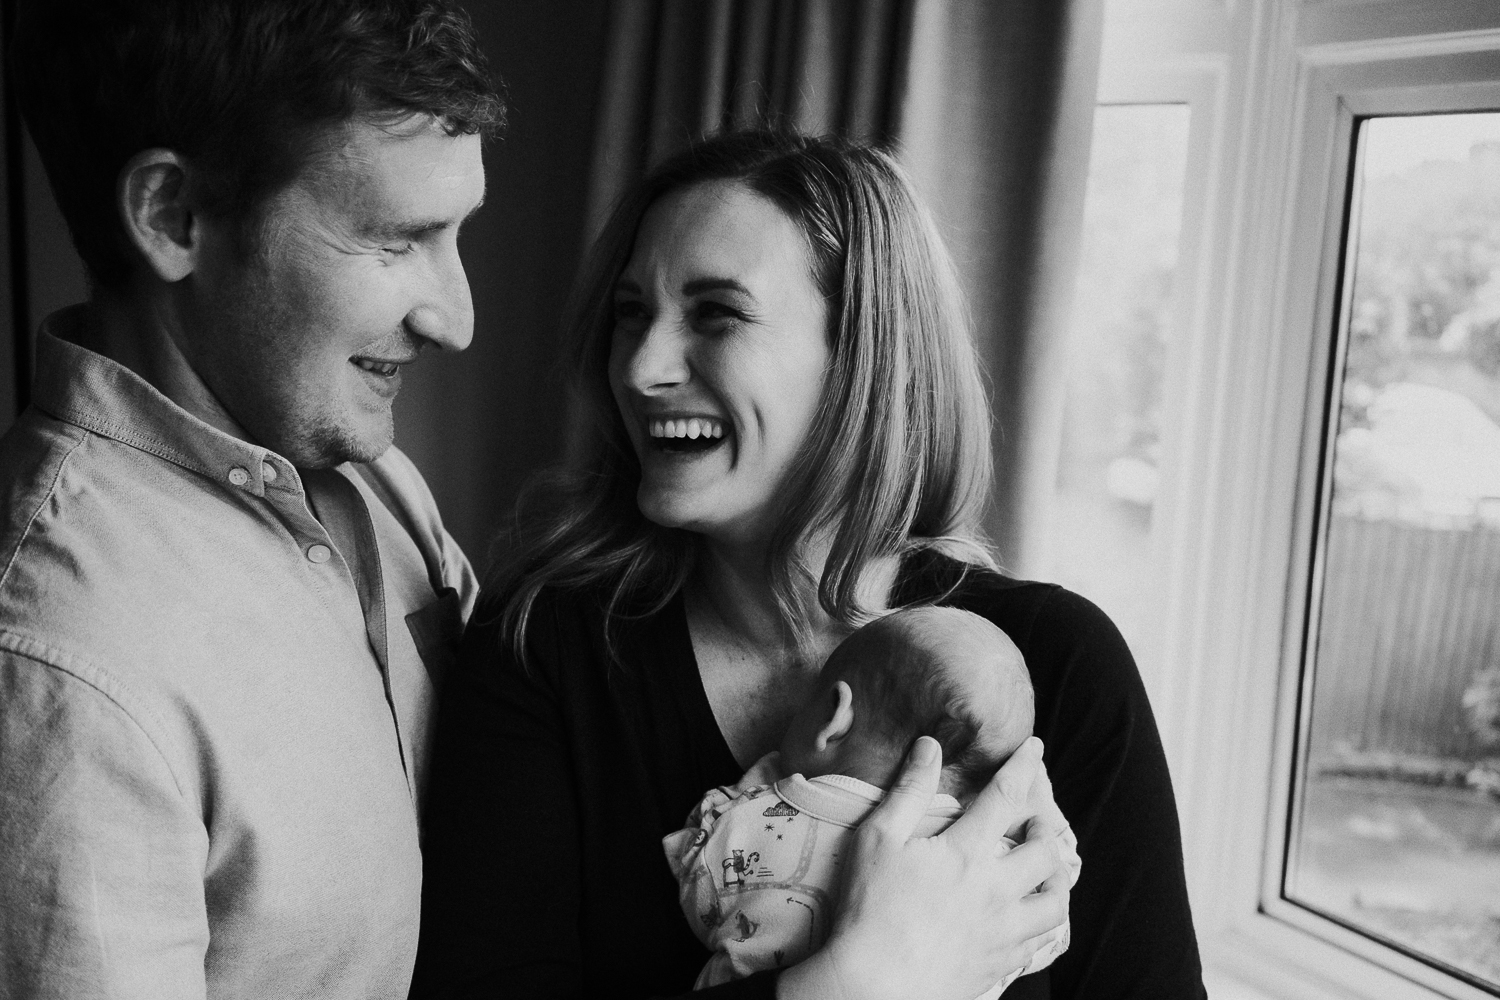 newborn photo session at home in highgate black and white photo of baby boy and parents